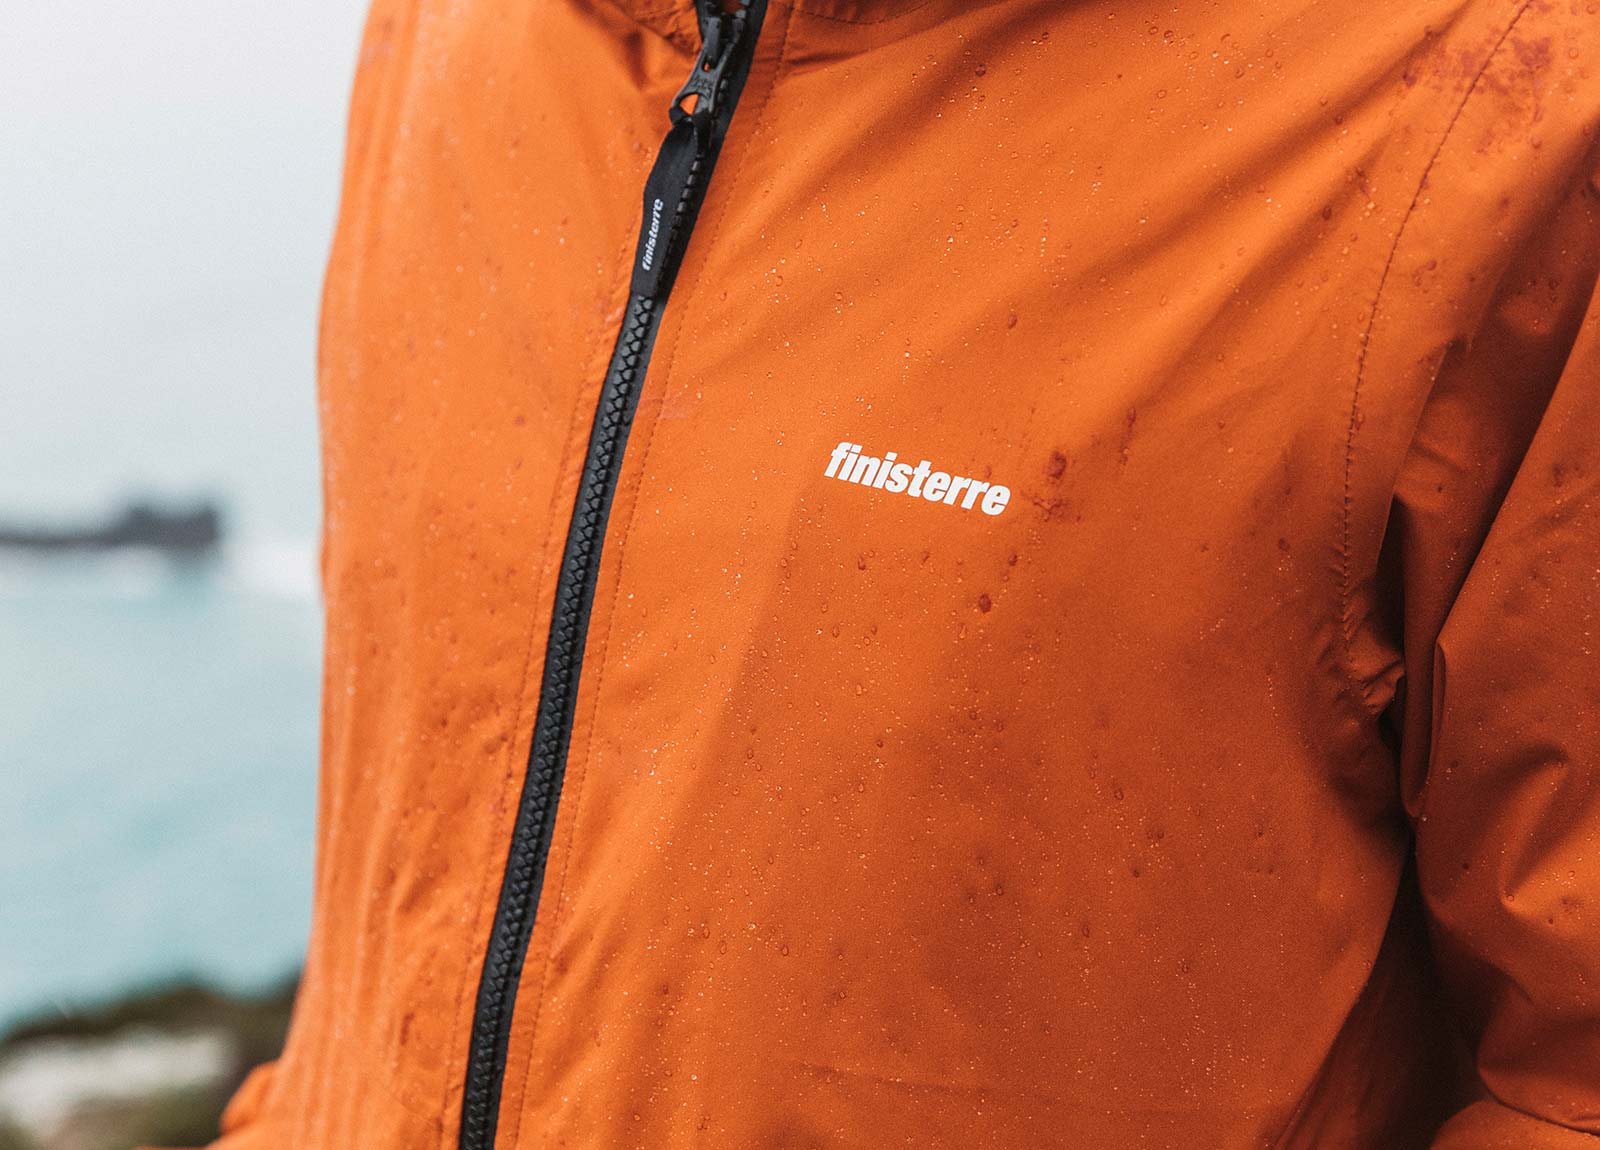 Fully waterproof aquaguard zip keeps water out from the Rainbird waterproof jacket.